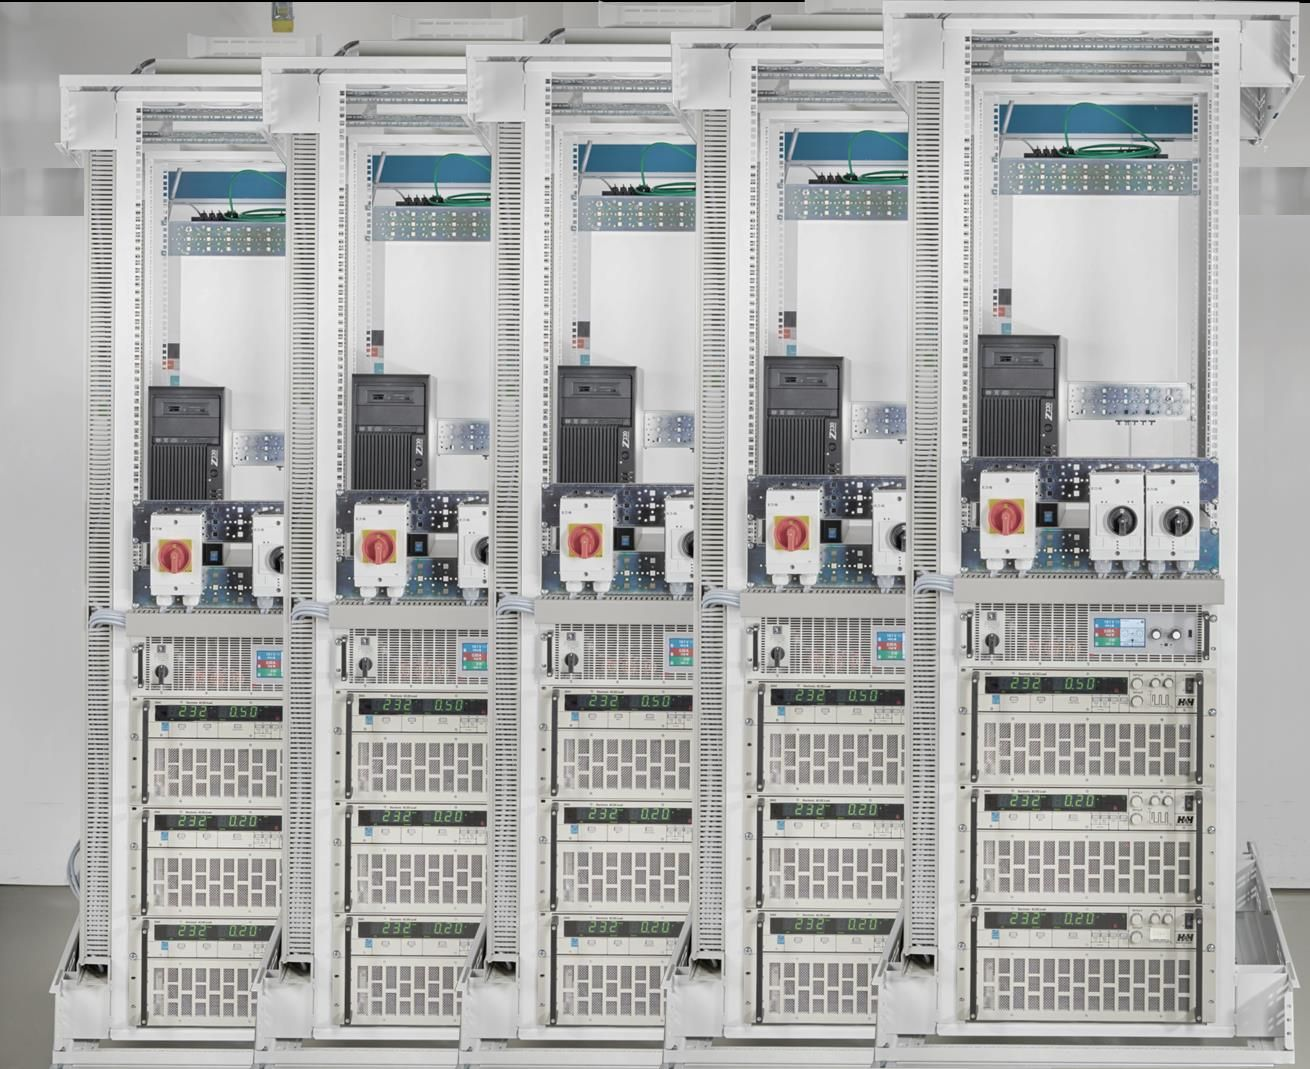 Solar Power Home Storage Systems Put To Test Wiring The Safetyfirst Project Studies Safety Quality And Grid Suitability Of For Produced By Photovoltaics At More Than 20